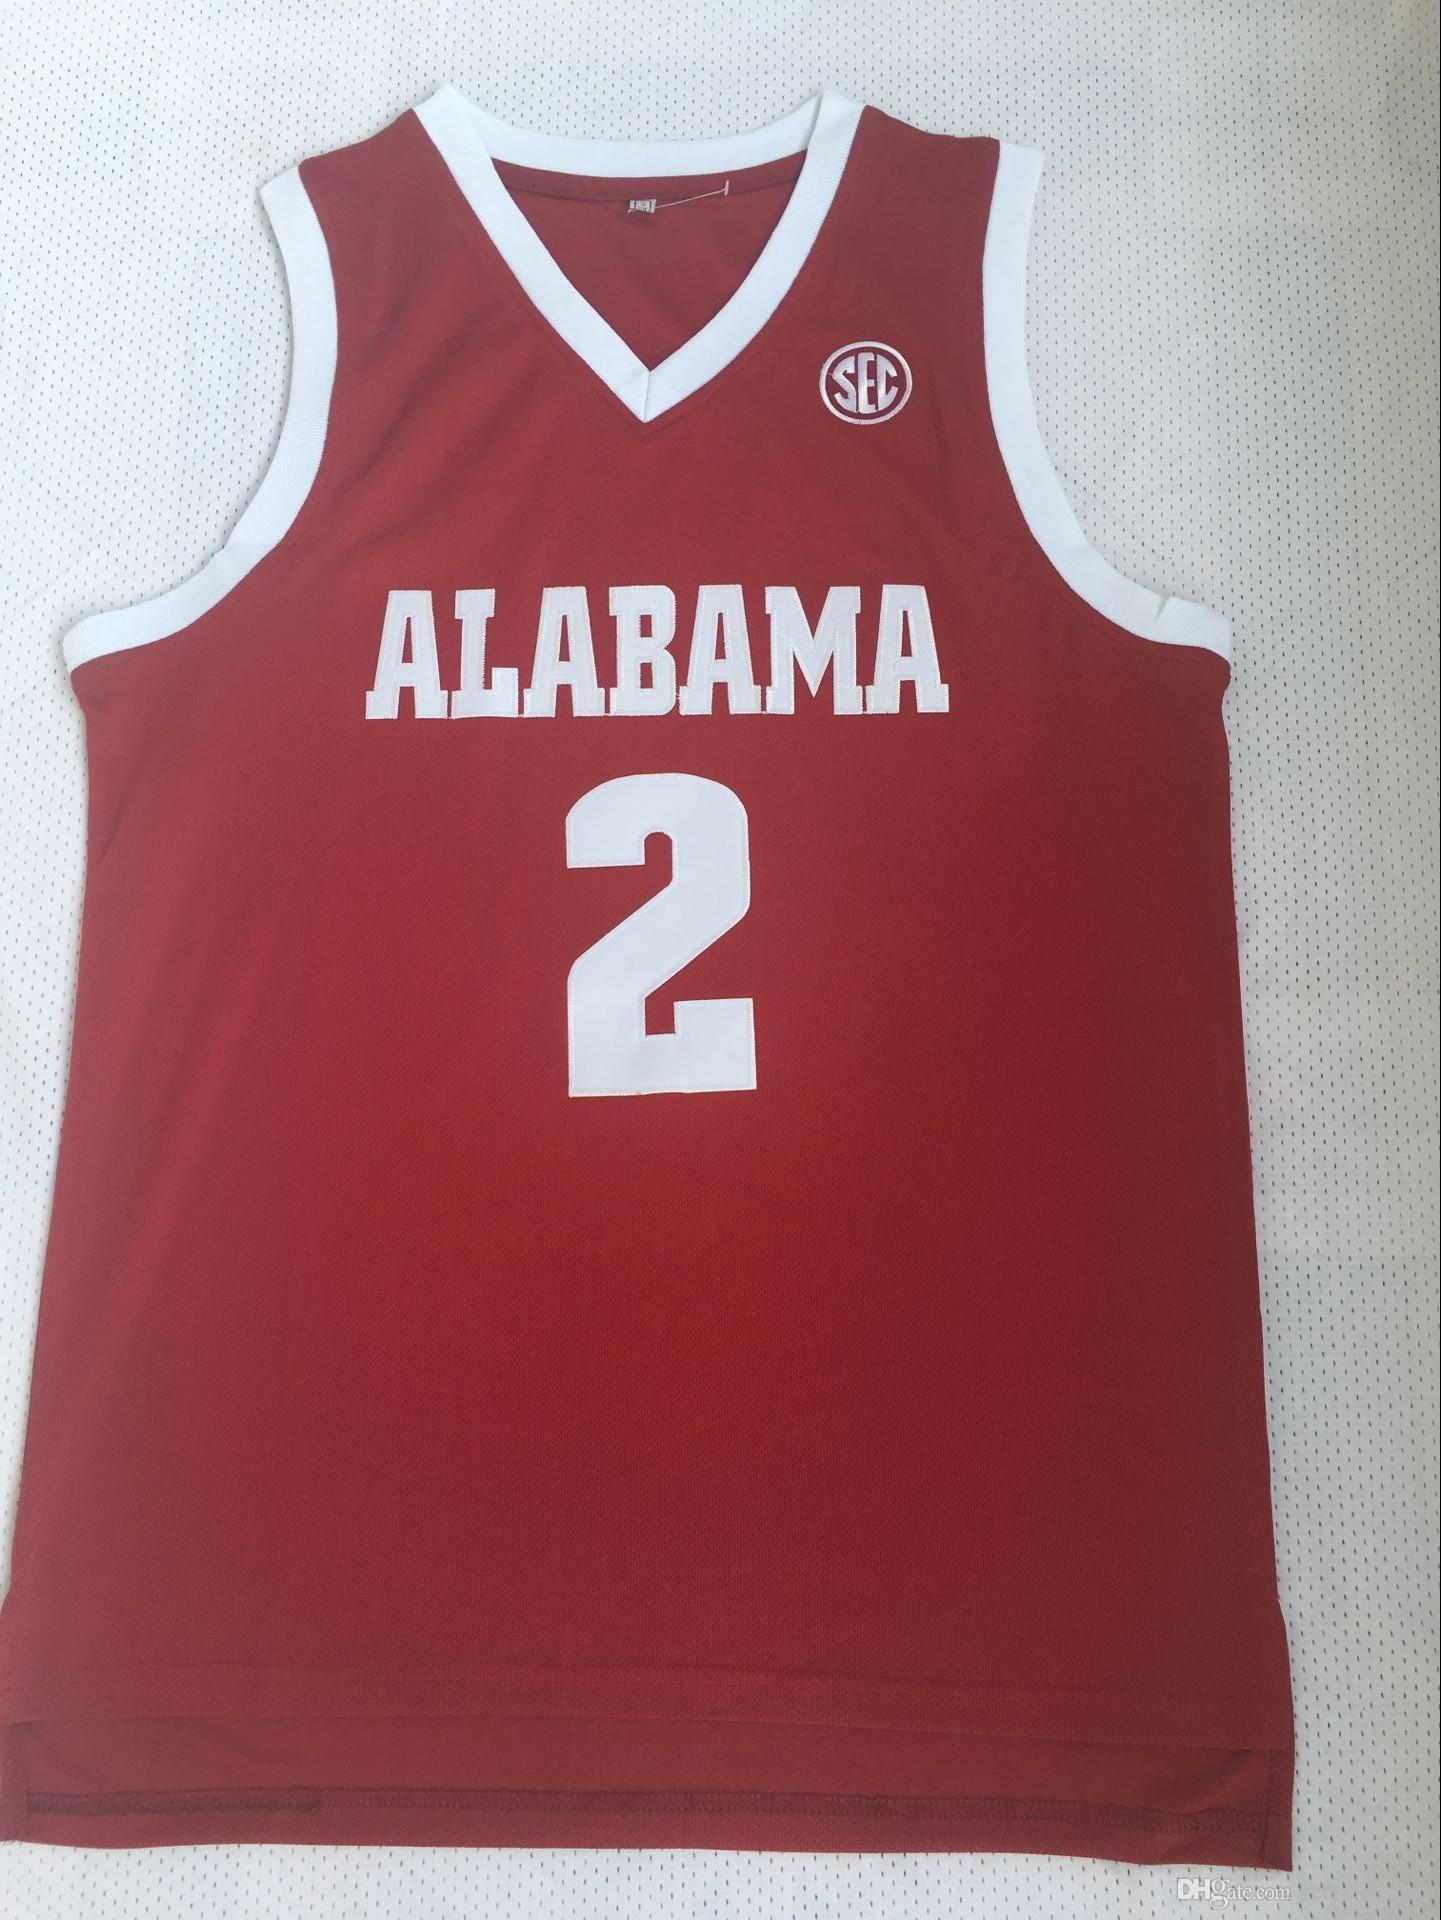 627db8d6e8c 2019 2018 Mens Collin Sexton College Jersey Alabama Crimson Tide Basketball  Jerseys  2 Home Red Collin Sexton Stitched Shirts S XXL From Redtradesport